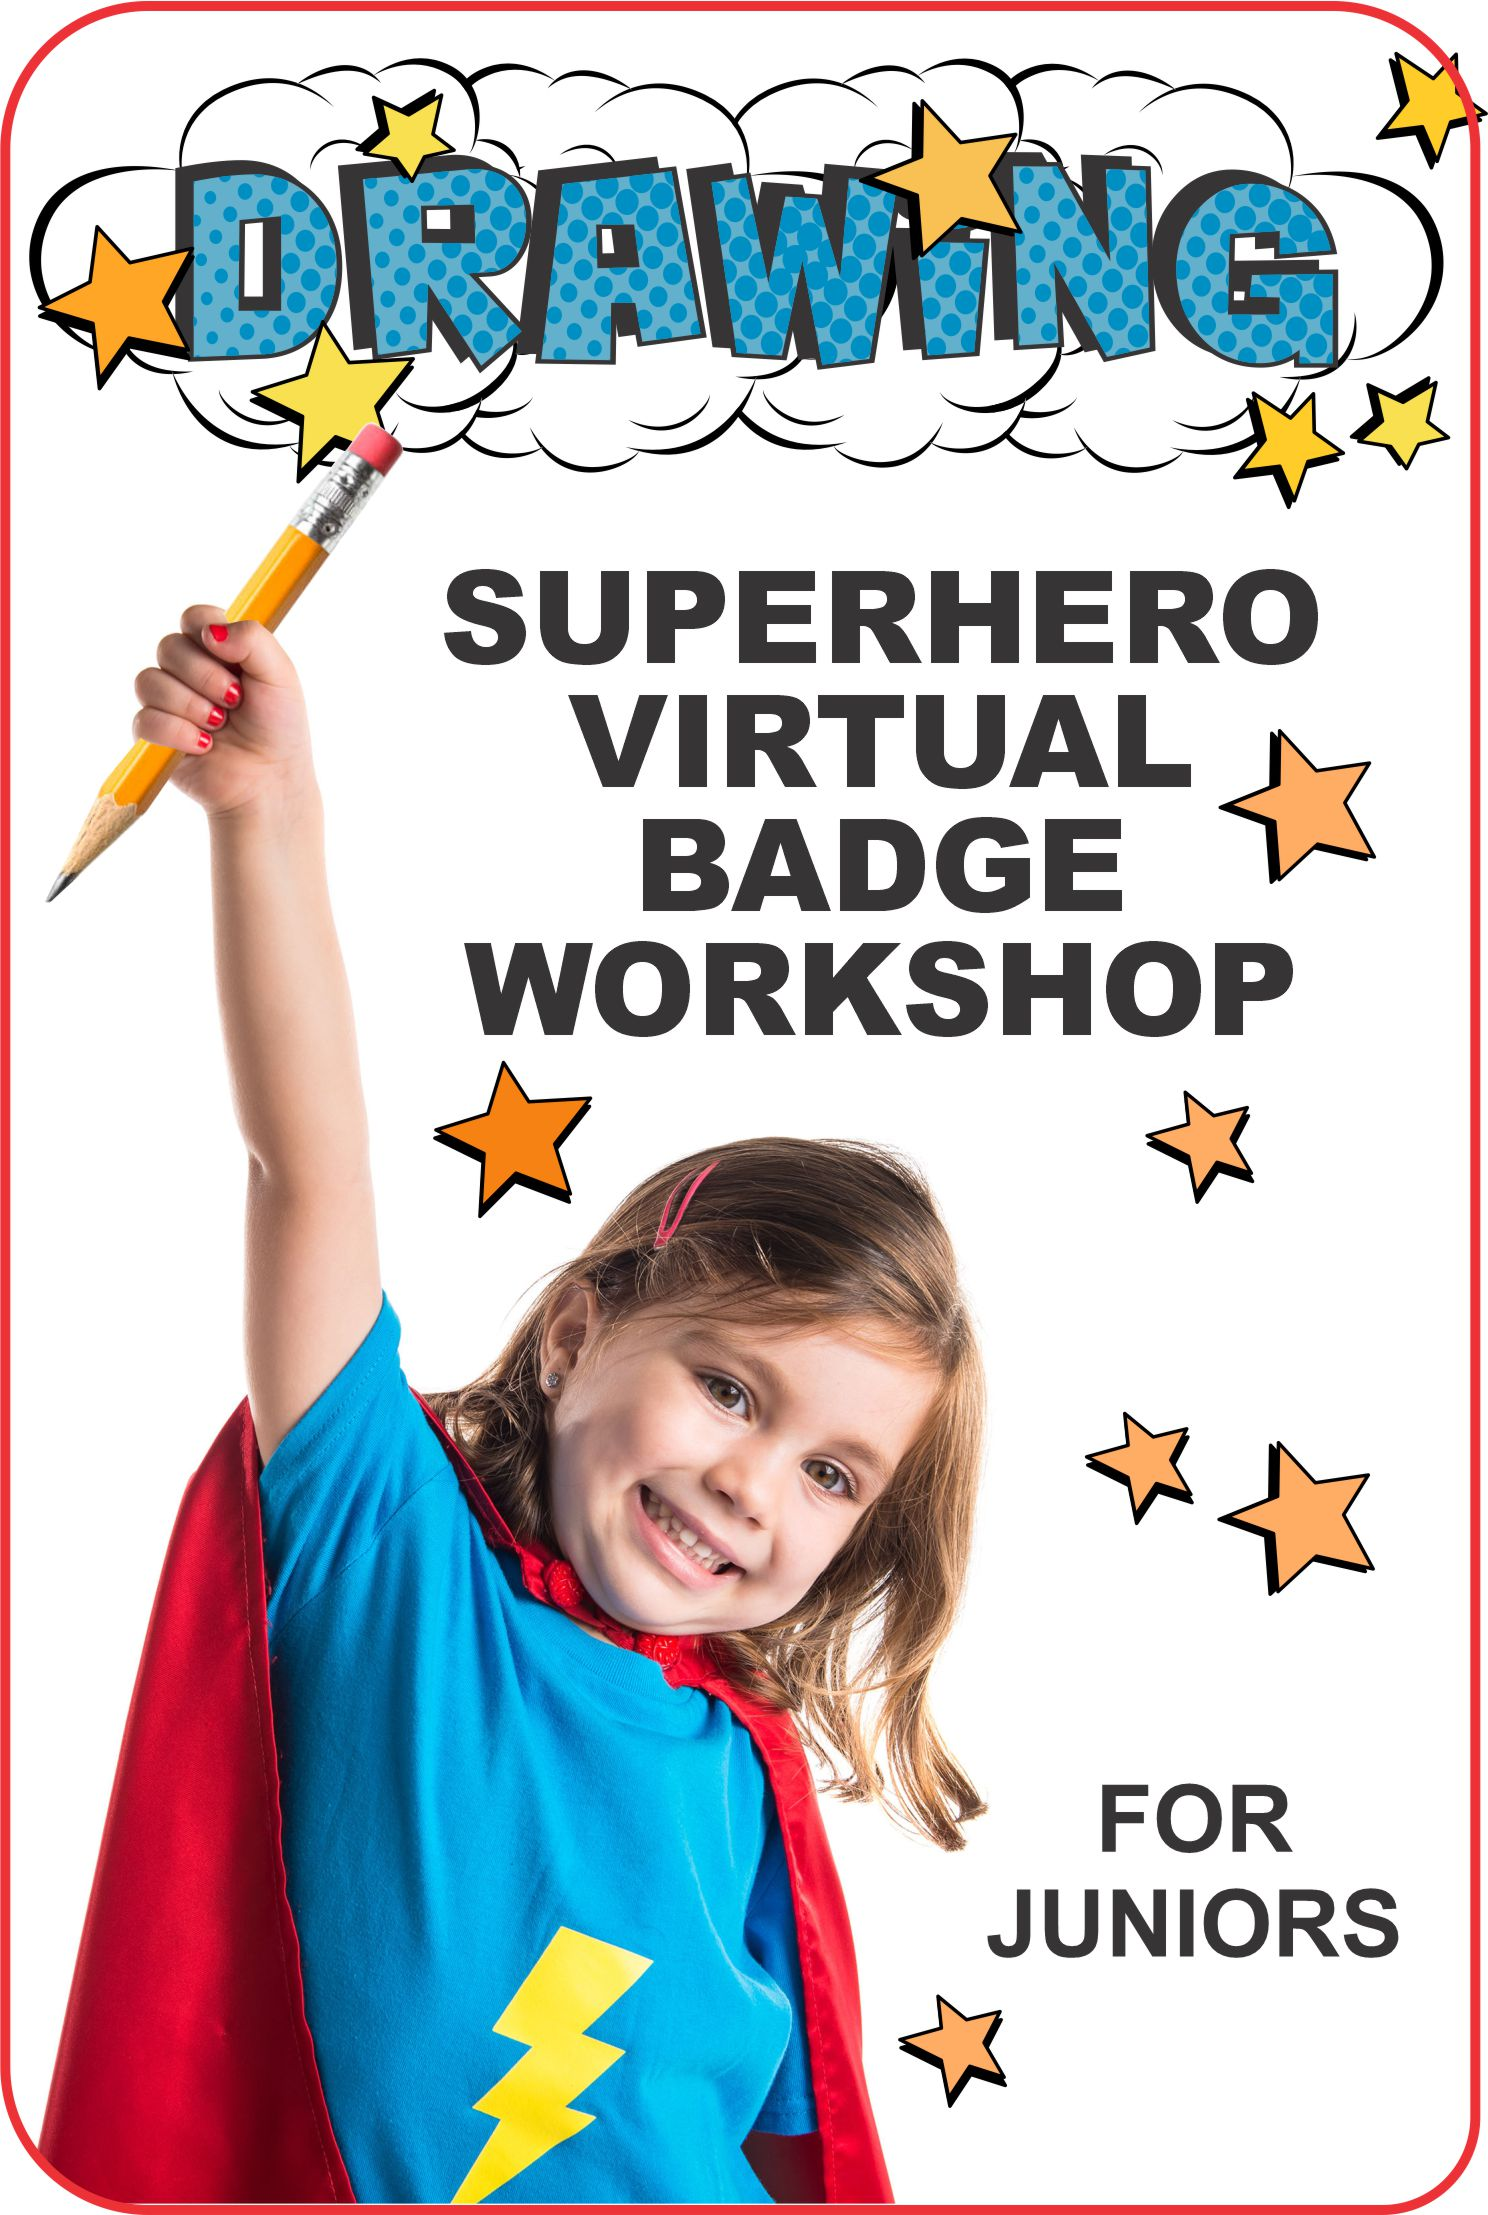 """Join us online for a 1-hour virtual workshop where your juniors earn the """"Drawing"""" badge while learning about drawing and design fundamentals! #makingfriends #virtualclass #drawingpatch #patchprogram #virtual #onlineclass #virtualworkshop #onlinegirlscouts #virtualscouts via @gsleader411"""